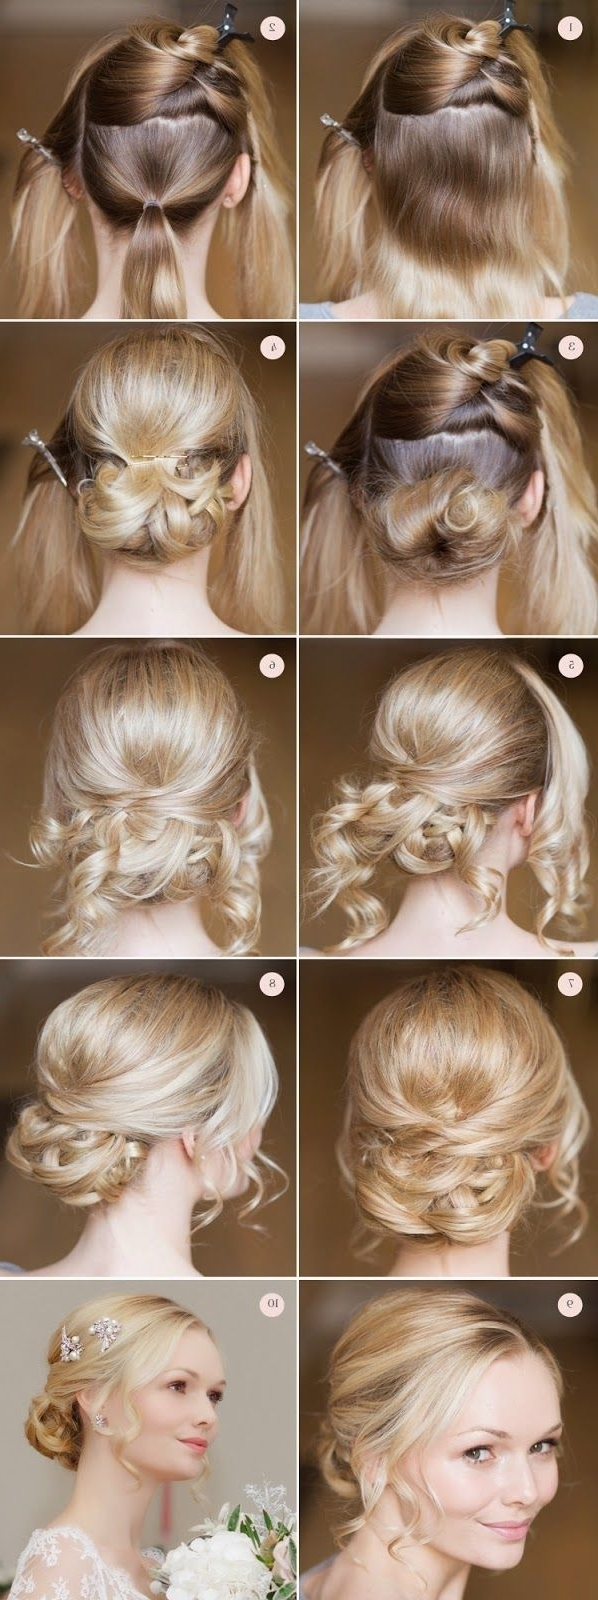 Gorgeous Pretty Bridal Hairstyles ~ Calgary, Edmonton, Toronto, Red Pertaining To Fashionable Edmonton Wedding Hairstyles (View 7 of 15)